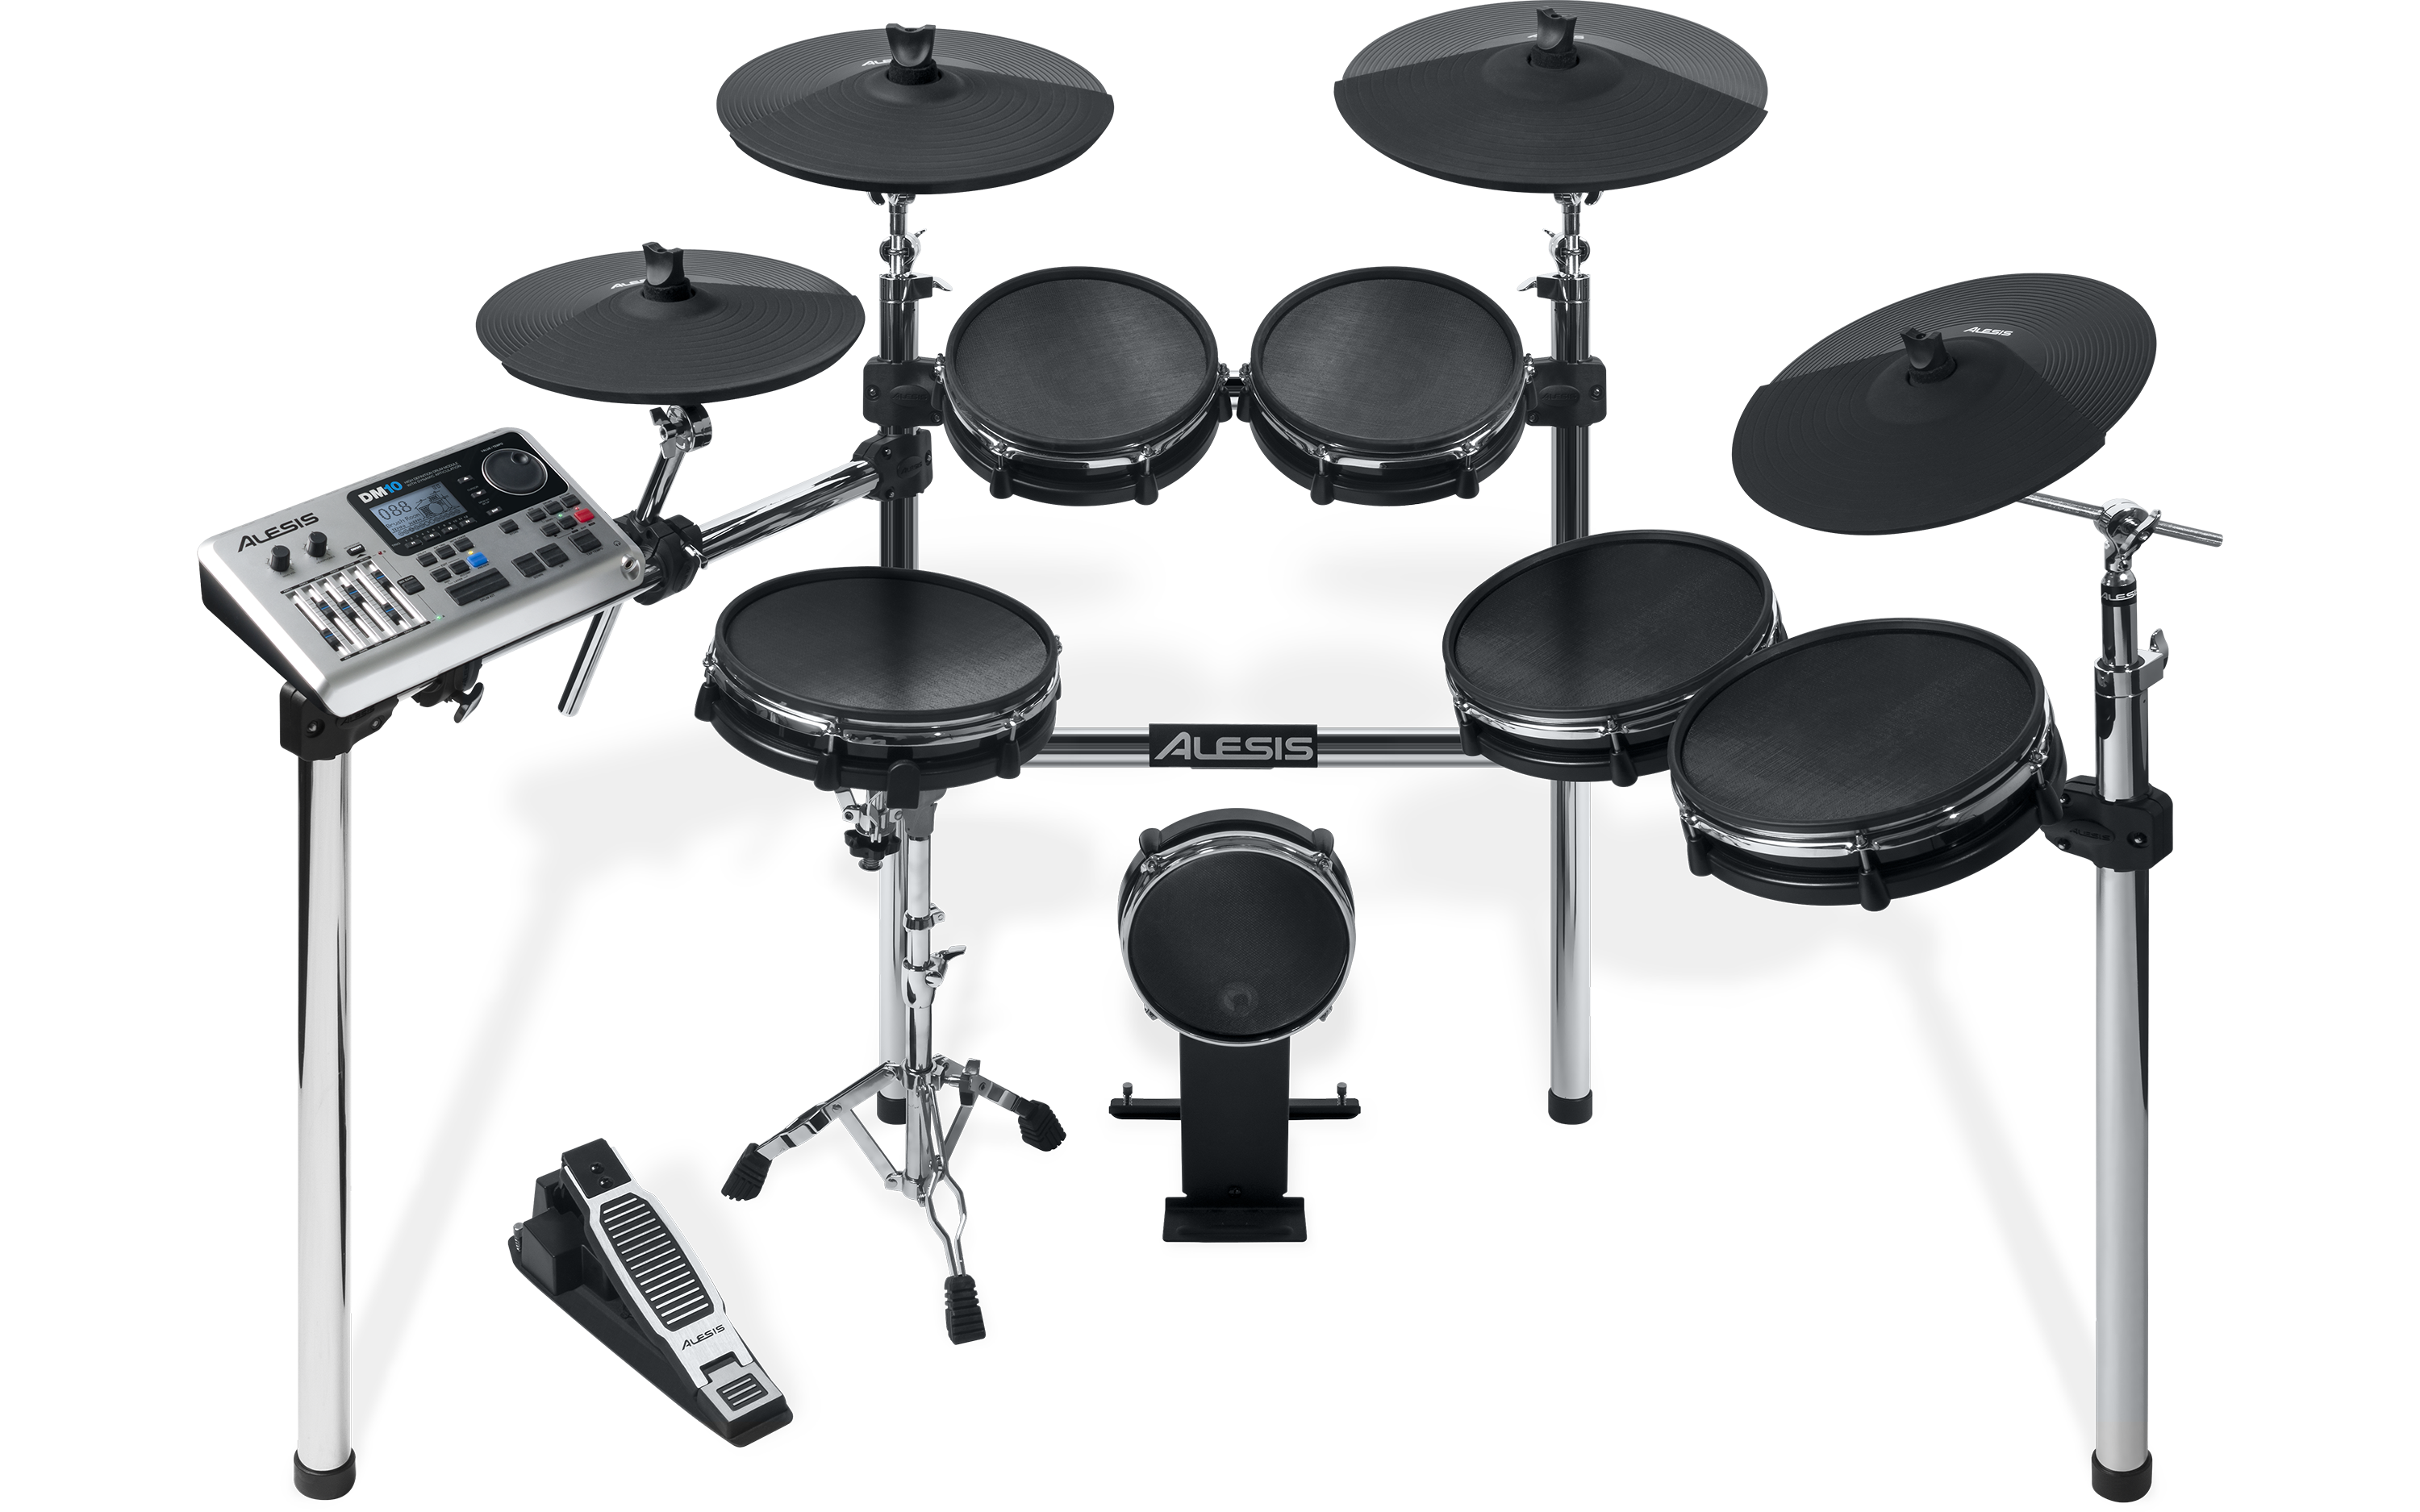 alesis dm10 x mesh kit six piece electronic drum kit with mesh drum heads 694318010594 ebay. Black Bedroom Furniture Sets. Home Design Ideas